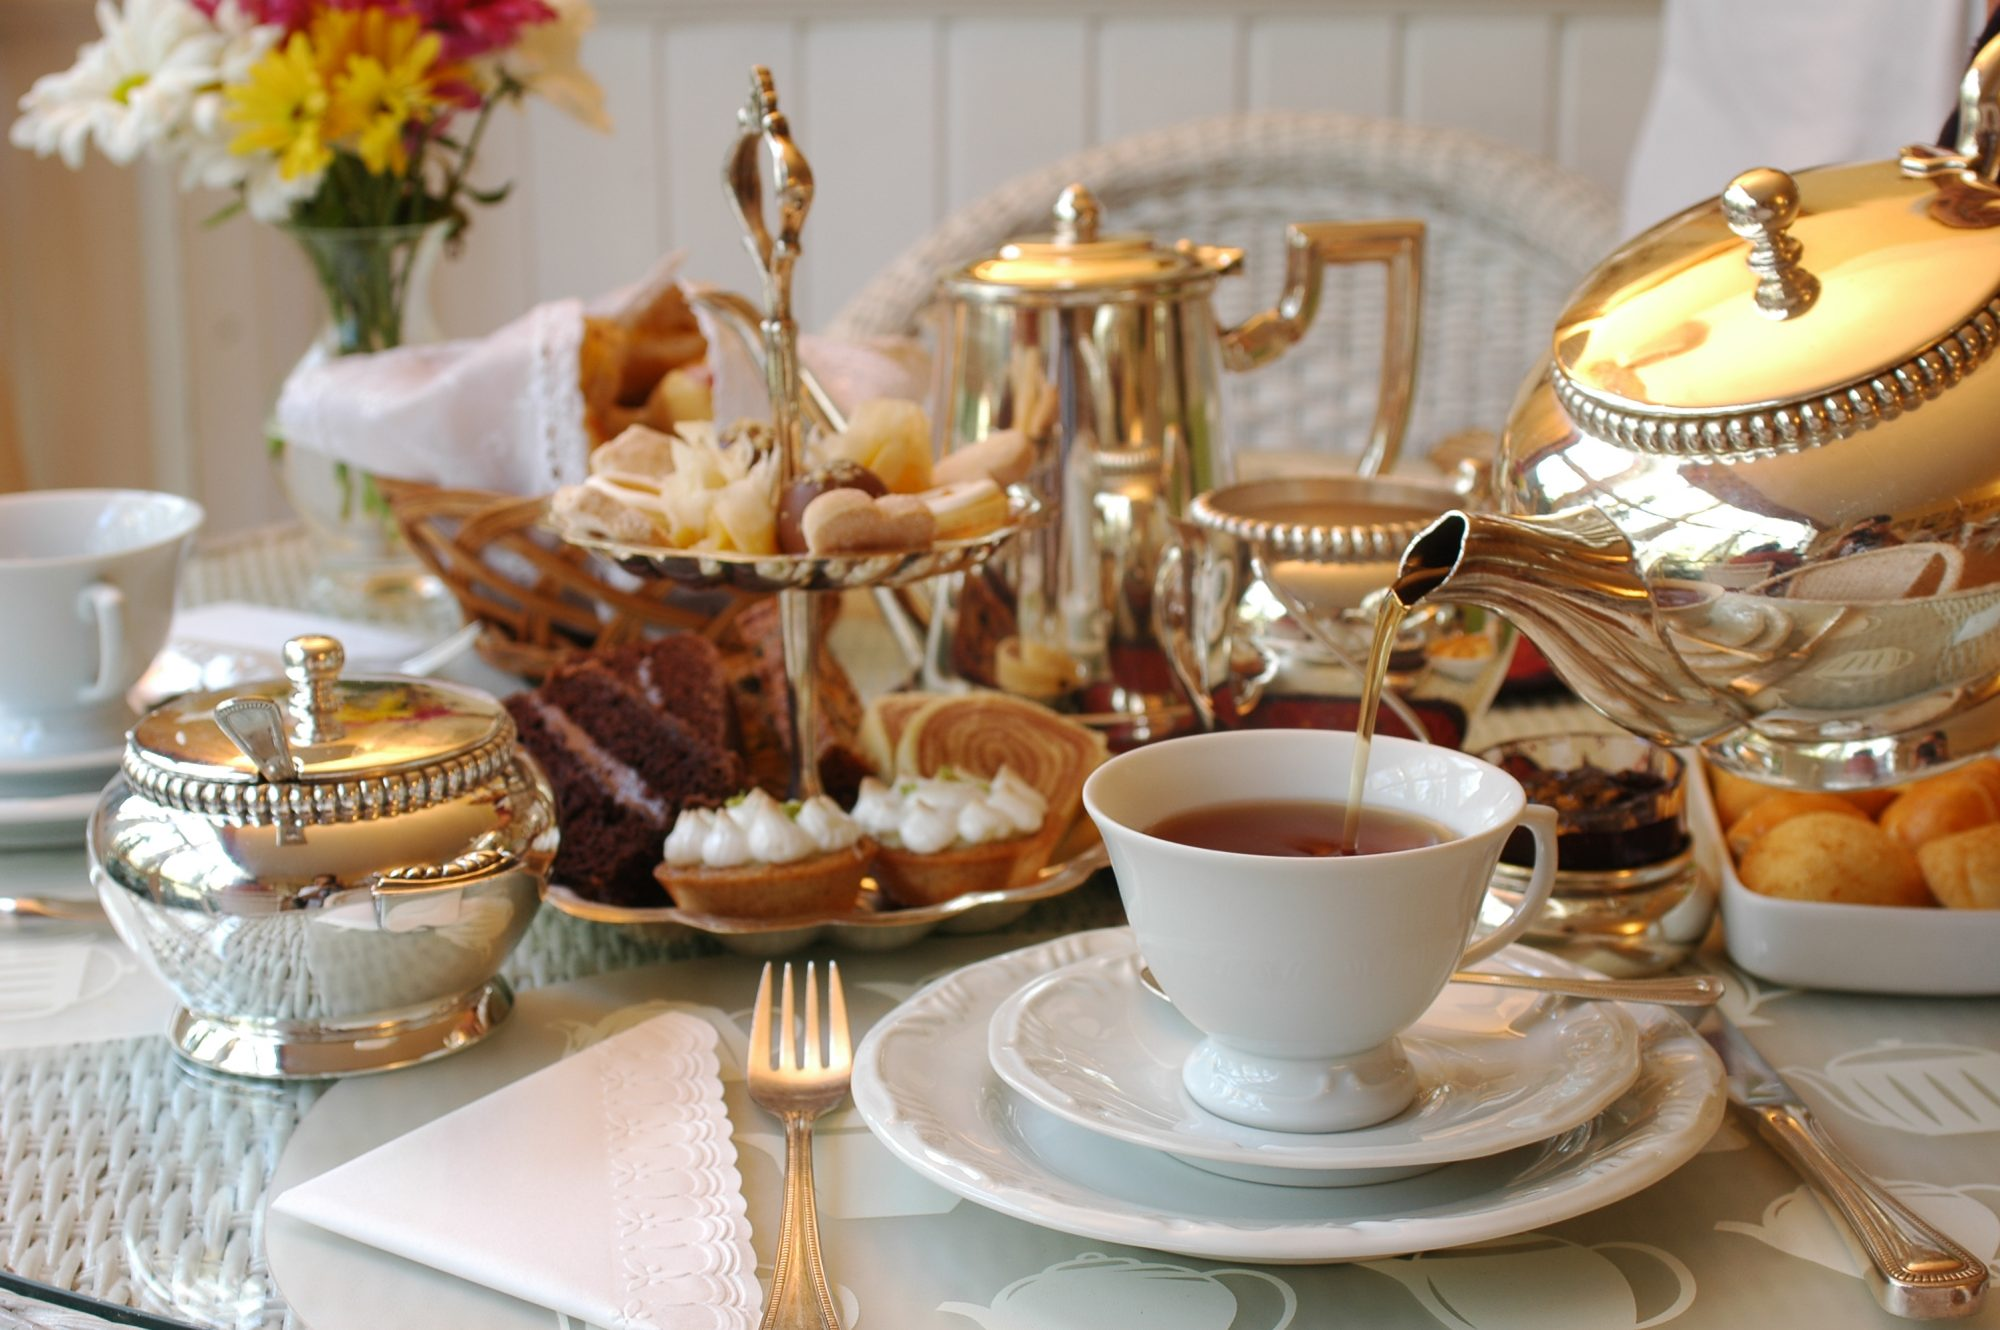 High Tea vs. Afternoon Tea Service